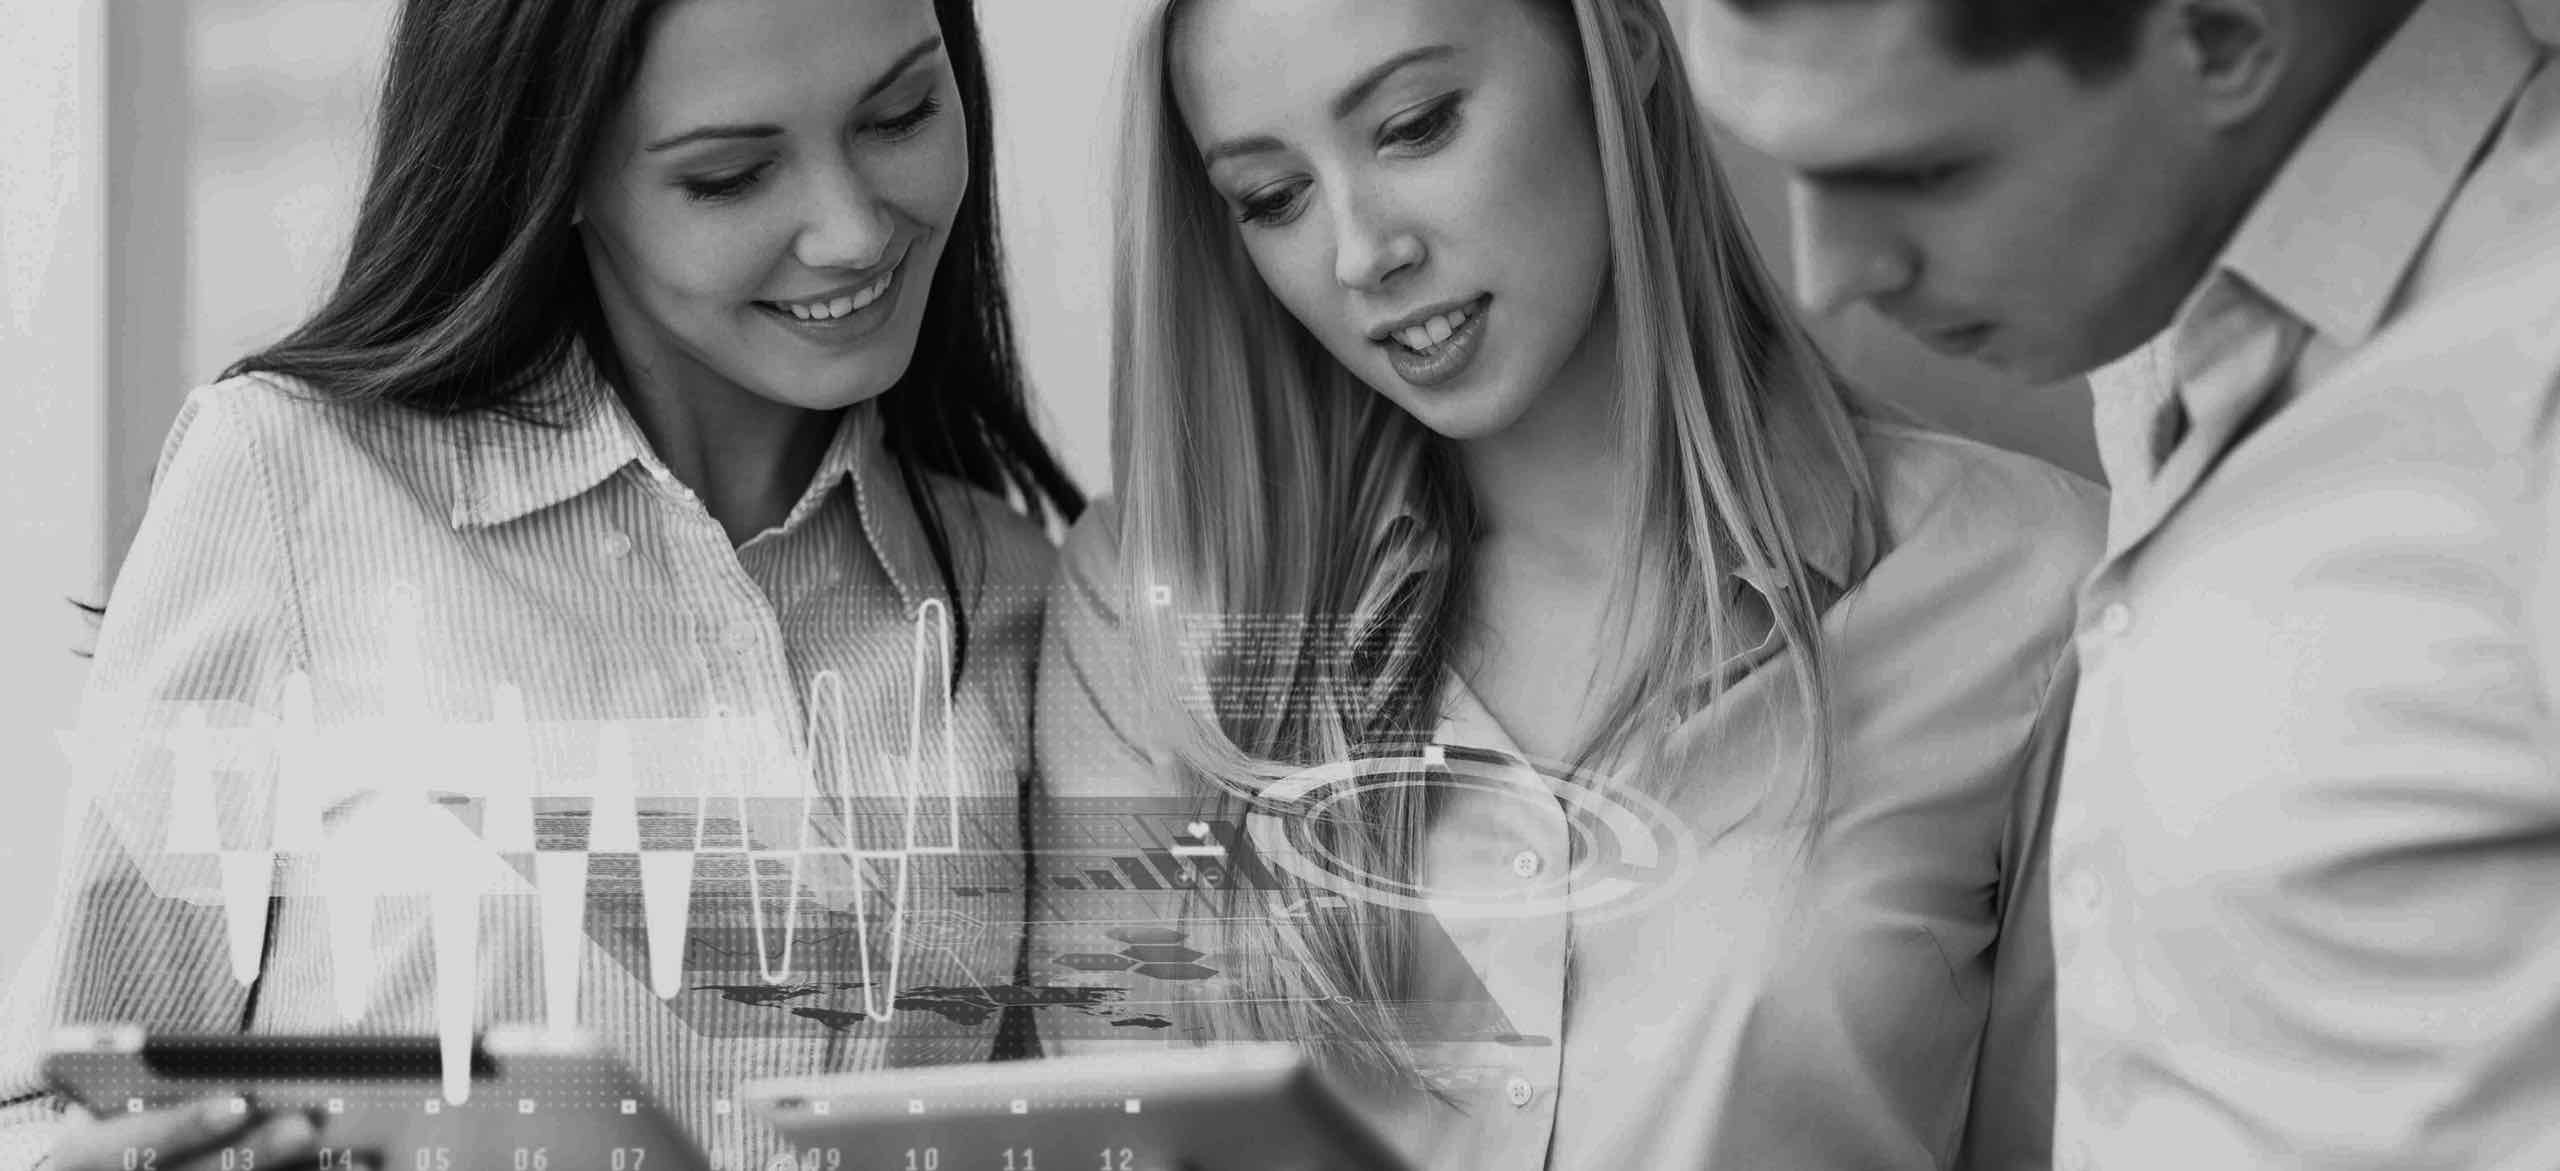 Omnichannel and retail innovation